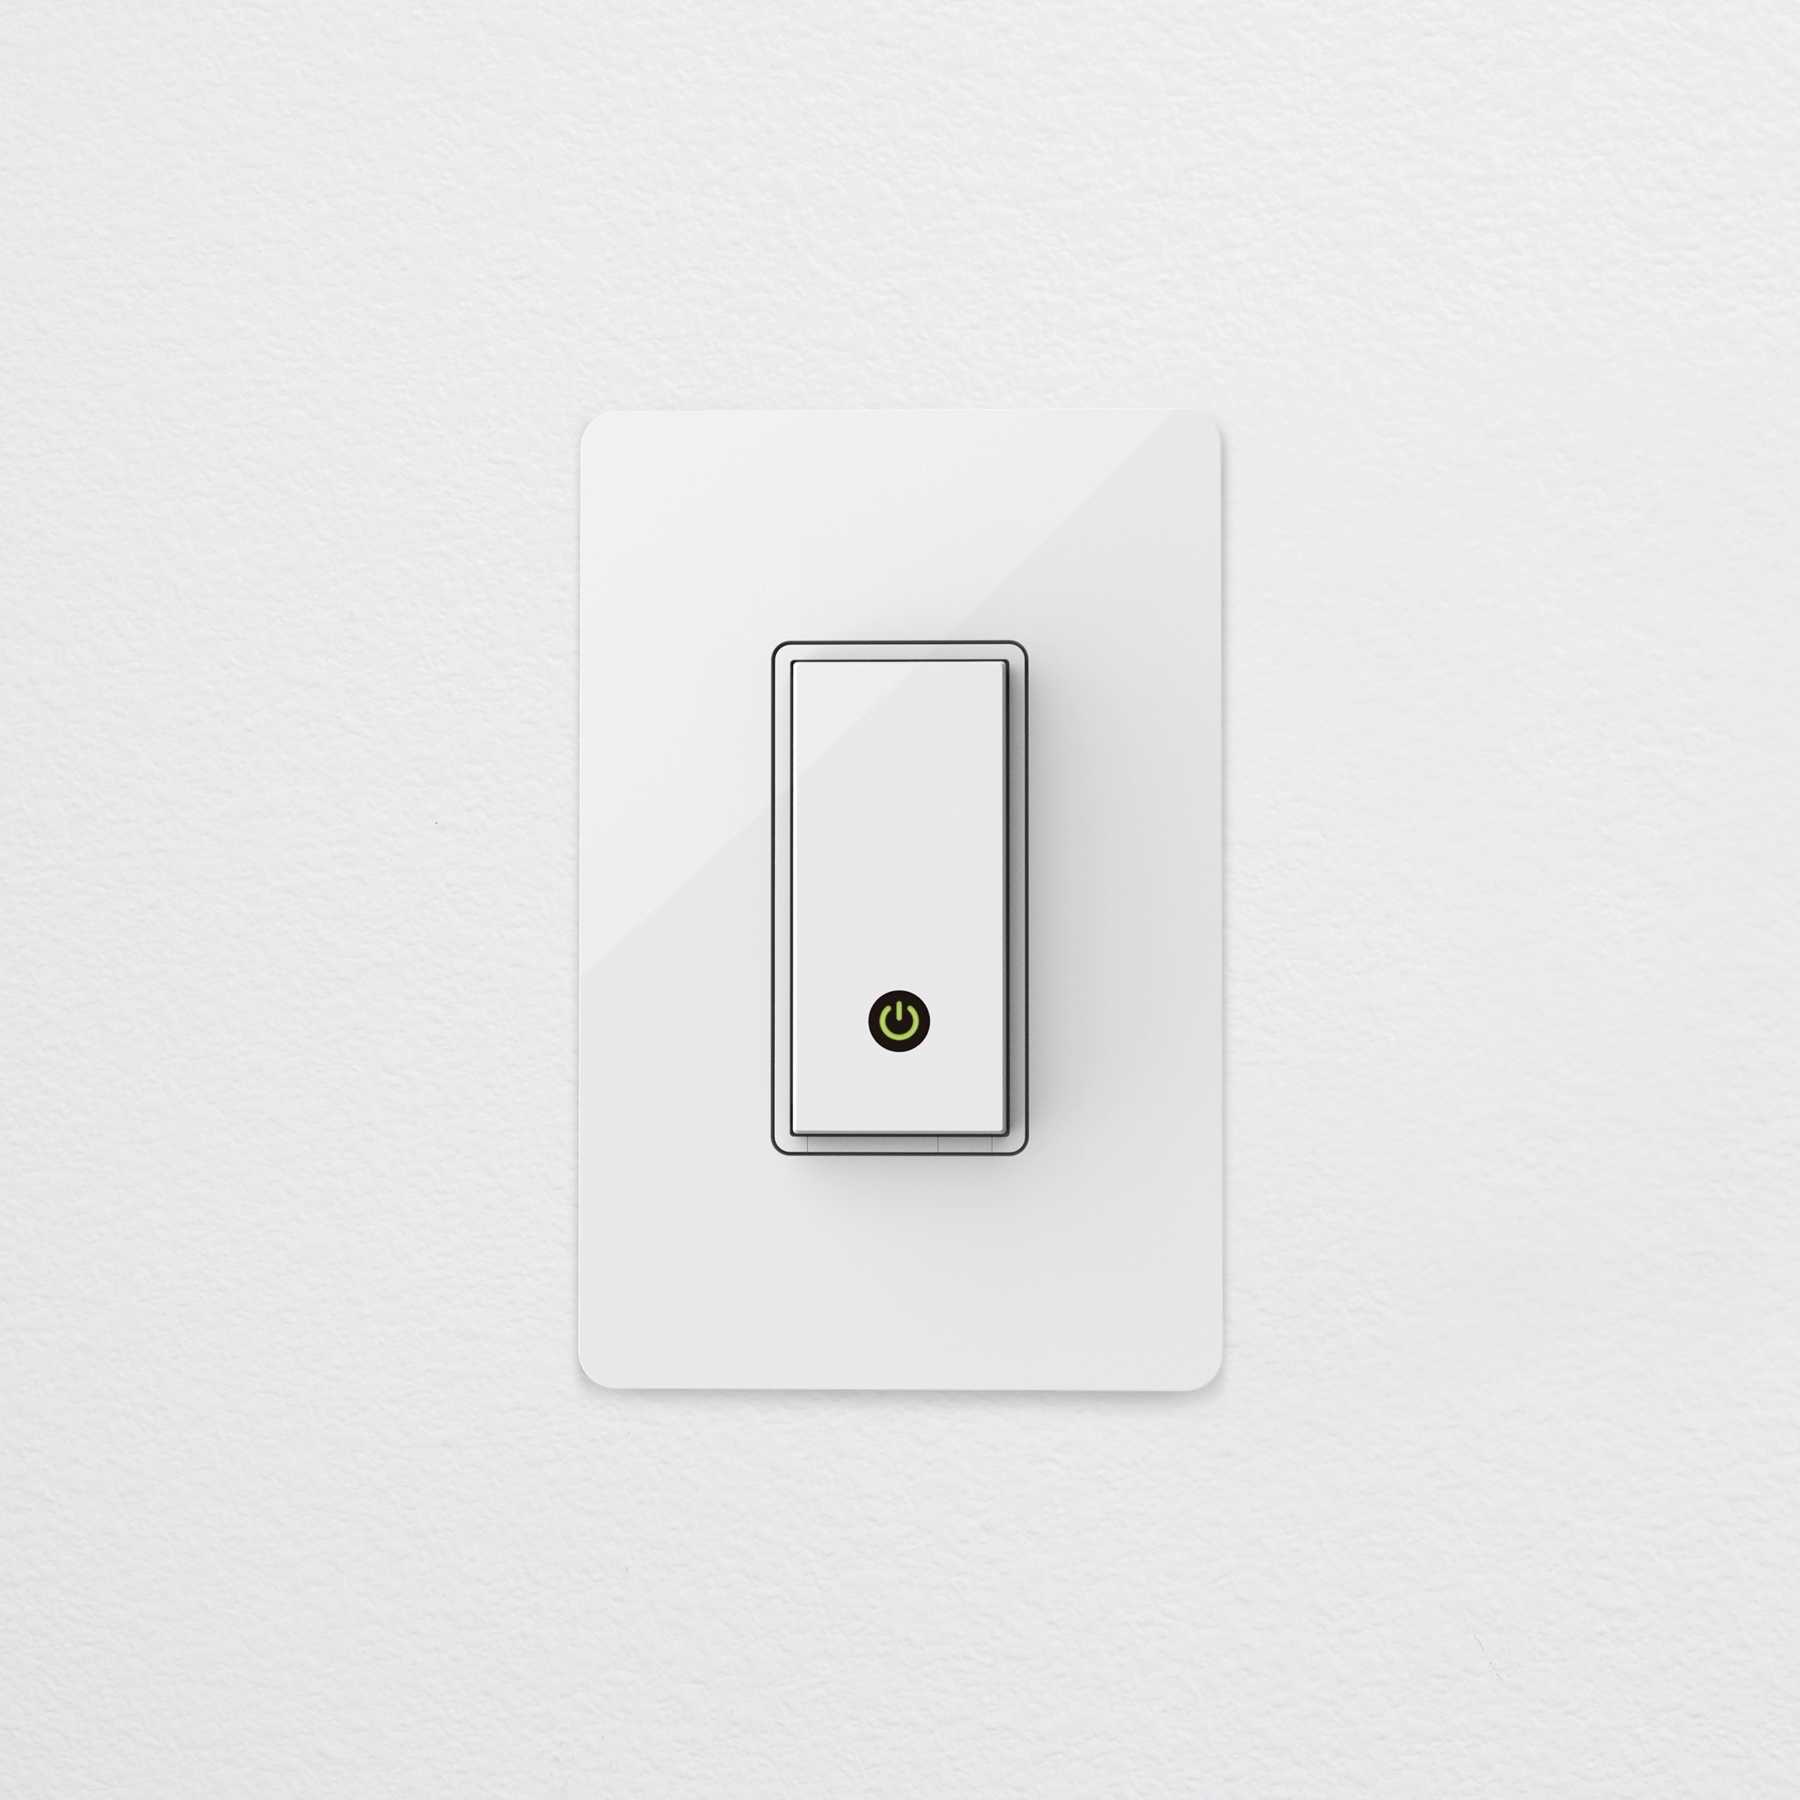 Belkin Announces Availability Of Wemo Light Switch Business Wire 2008 Lincoln Mkx Headlightfuse Boxdiagram Showingfuse Location Rh Businesswire Com